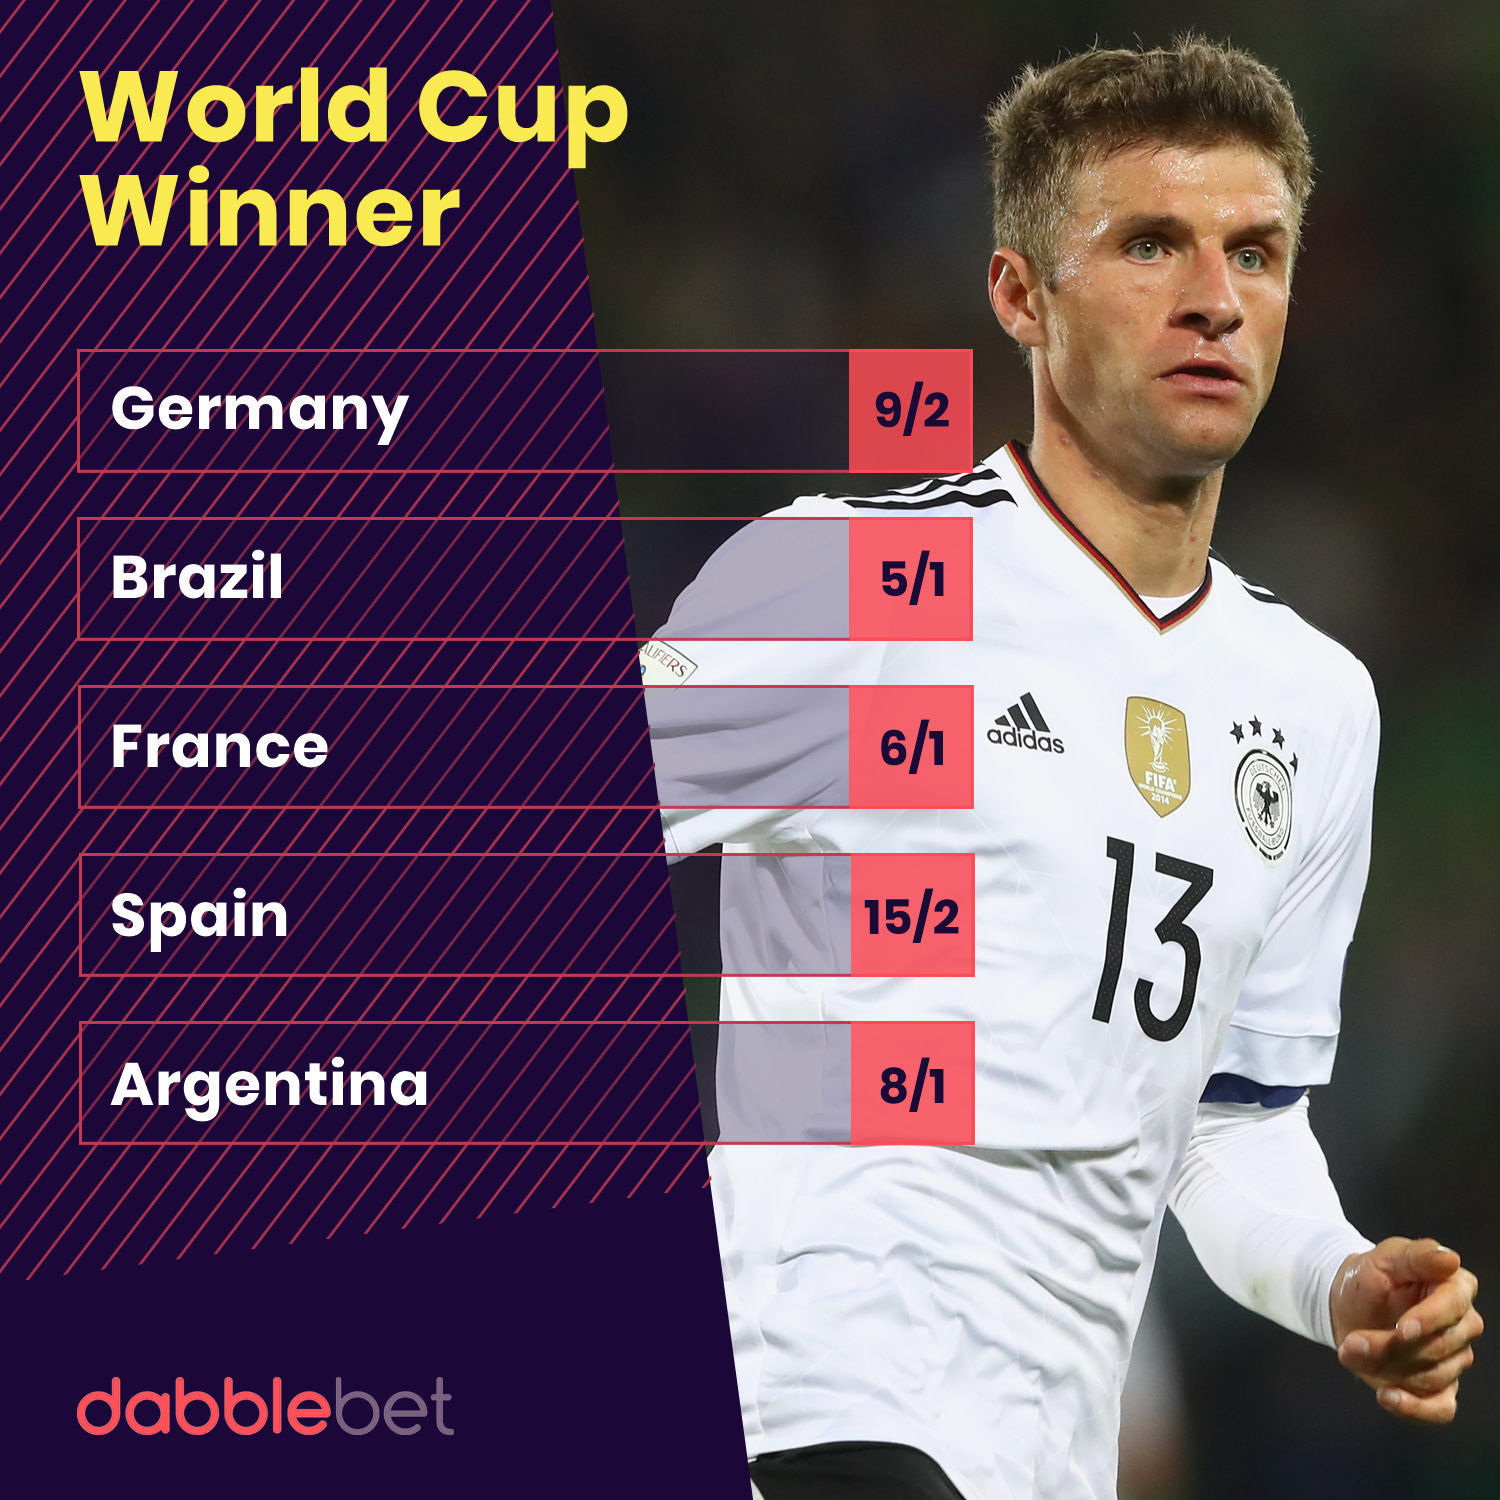 Worldcup betting single ladies show on bet